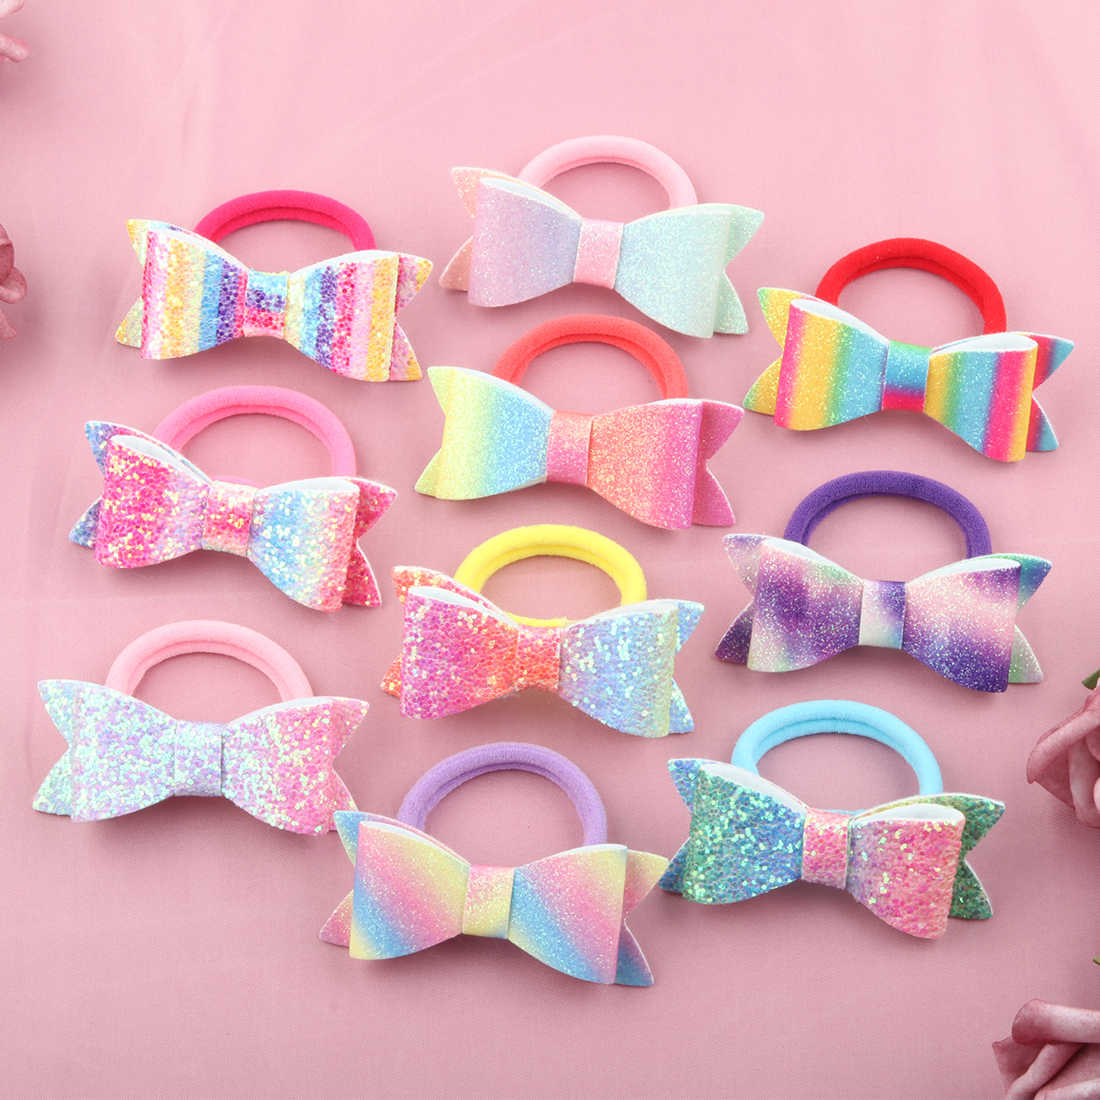 1 PC Child Hair Bow Tie Elastic Hair Band Glitter Hairbow Rope Rainbow Sequin Sparkly  3 Inch Bows Mermaid Girls Sweet Headwear